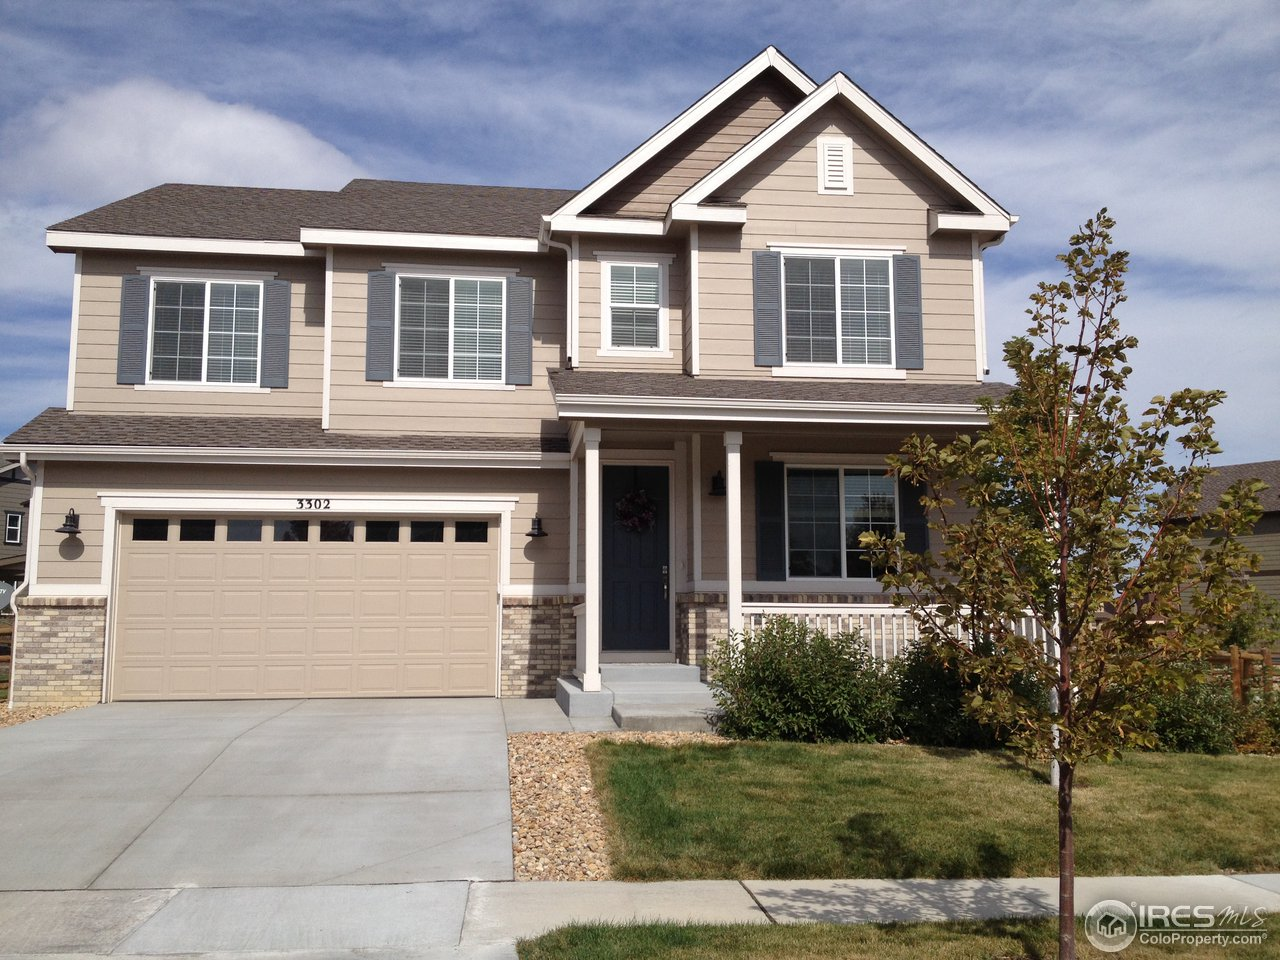 3302 Fiore Ct, Fort Collins CO 80521